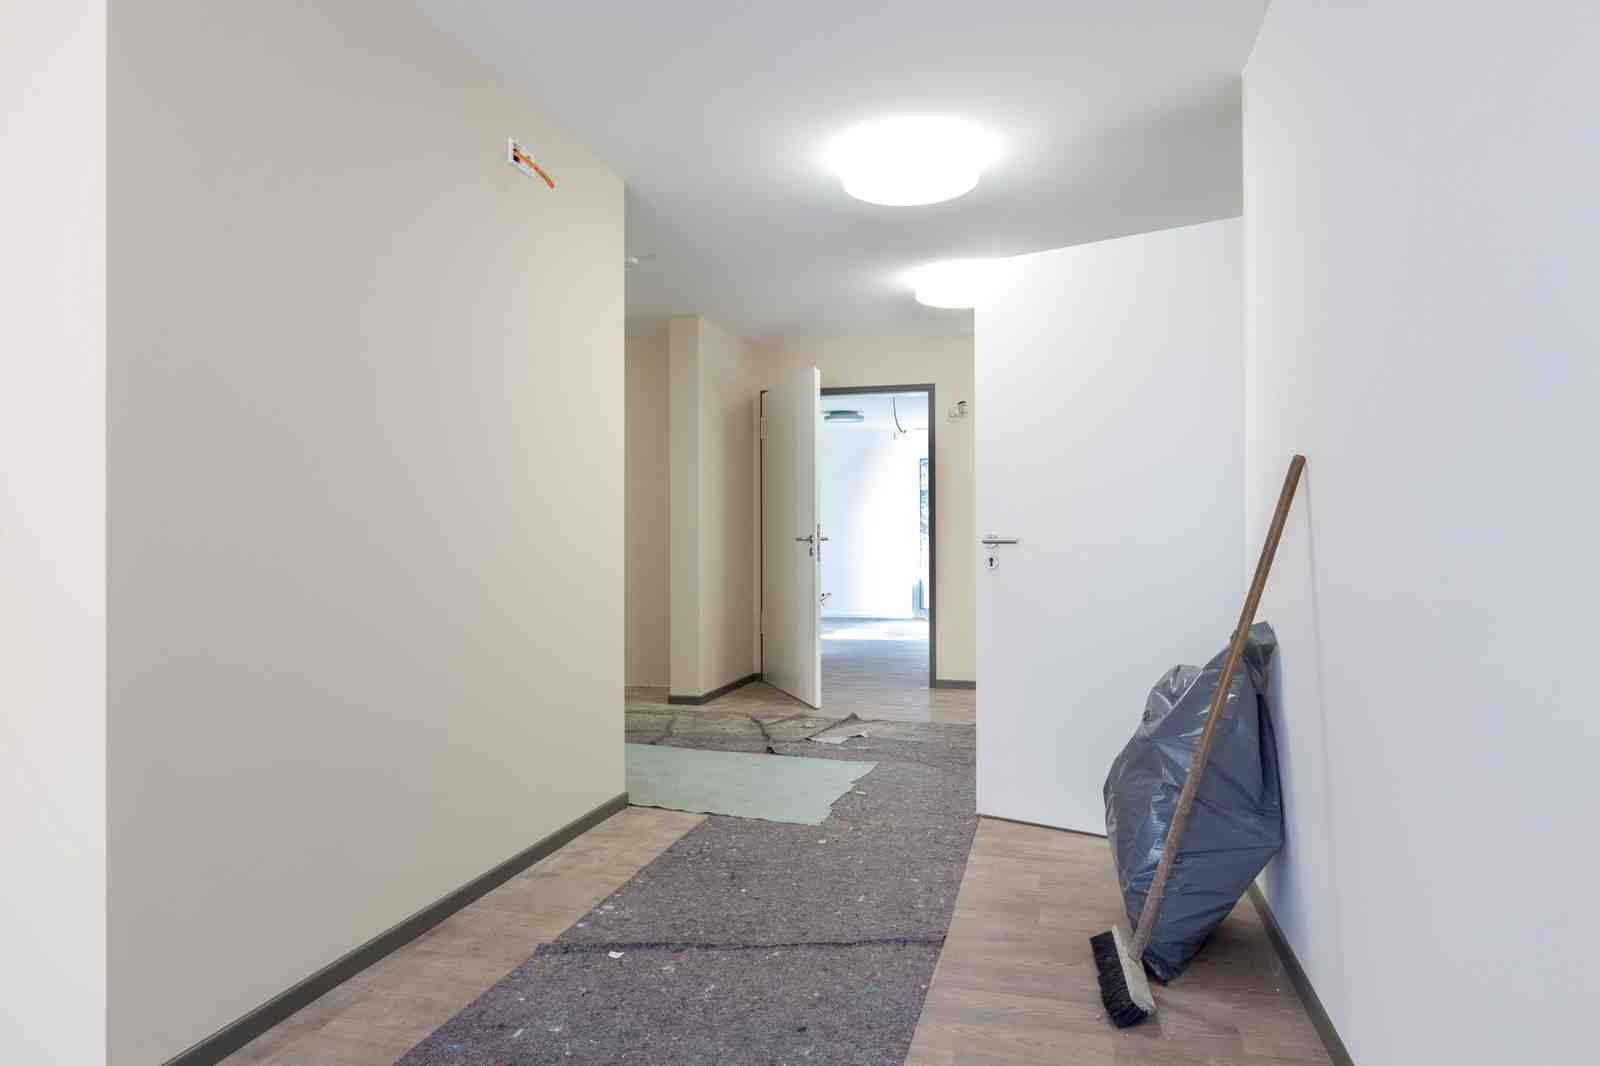 Peinture int rieure r novation r fection travaux de for Peintre interieur